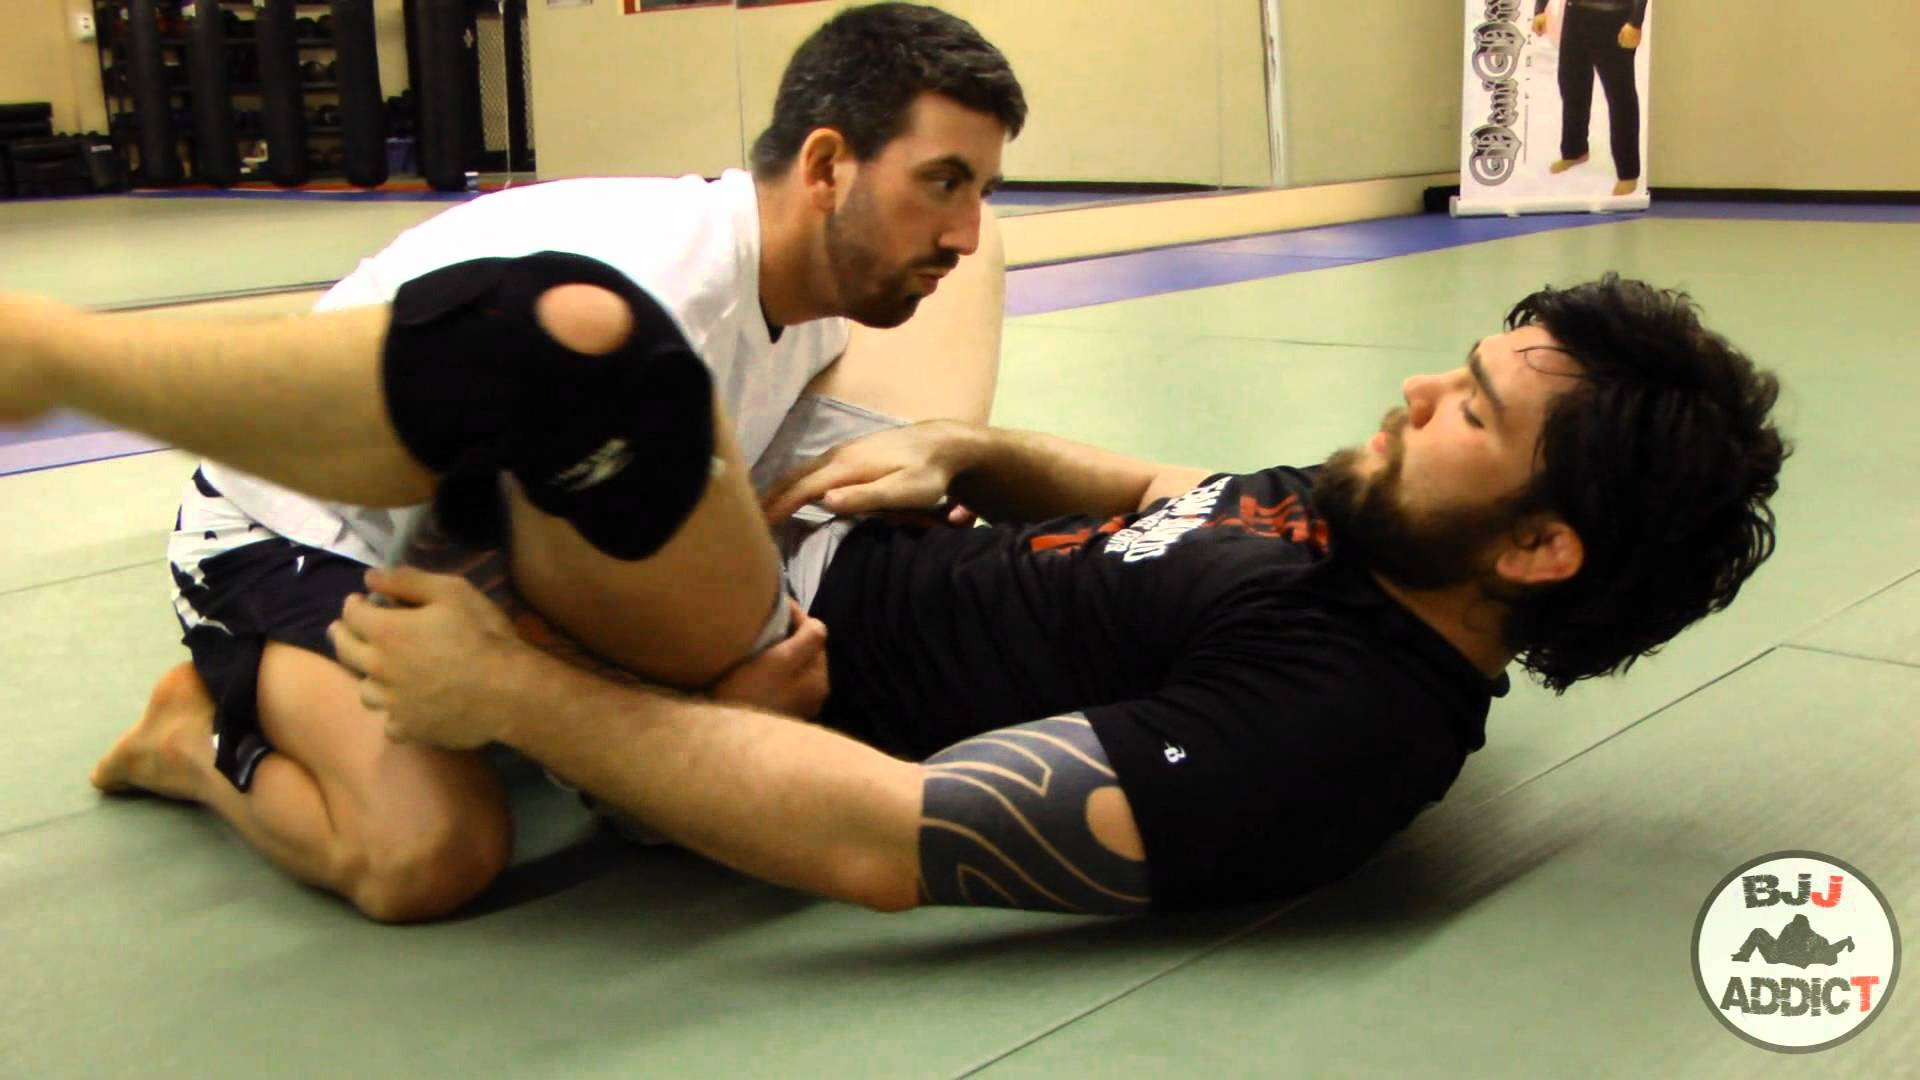 Painful Counter to Double Underhook Pass- Robert Drysdale